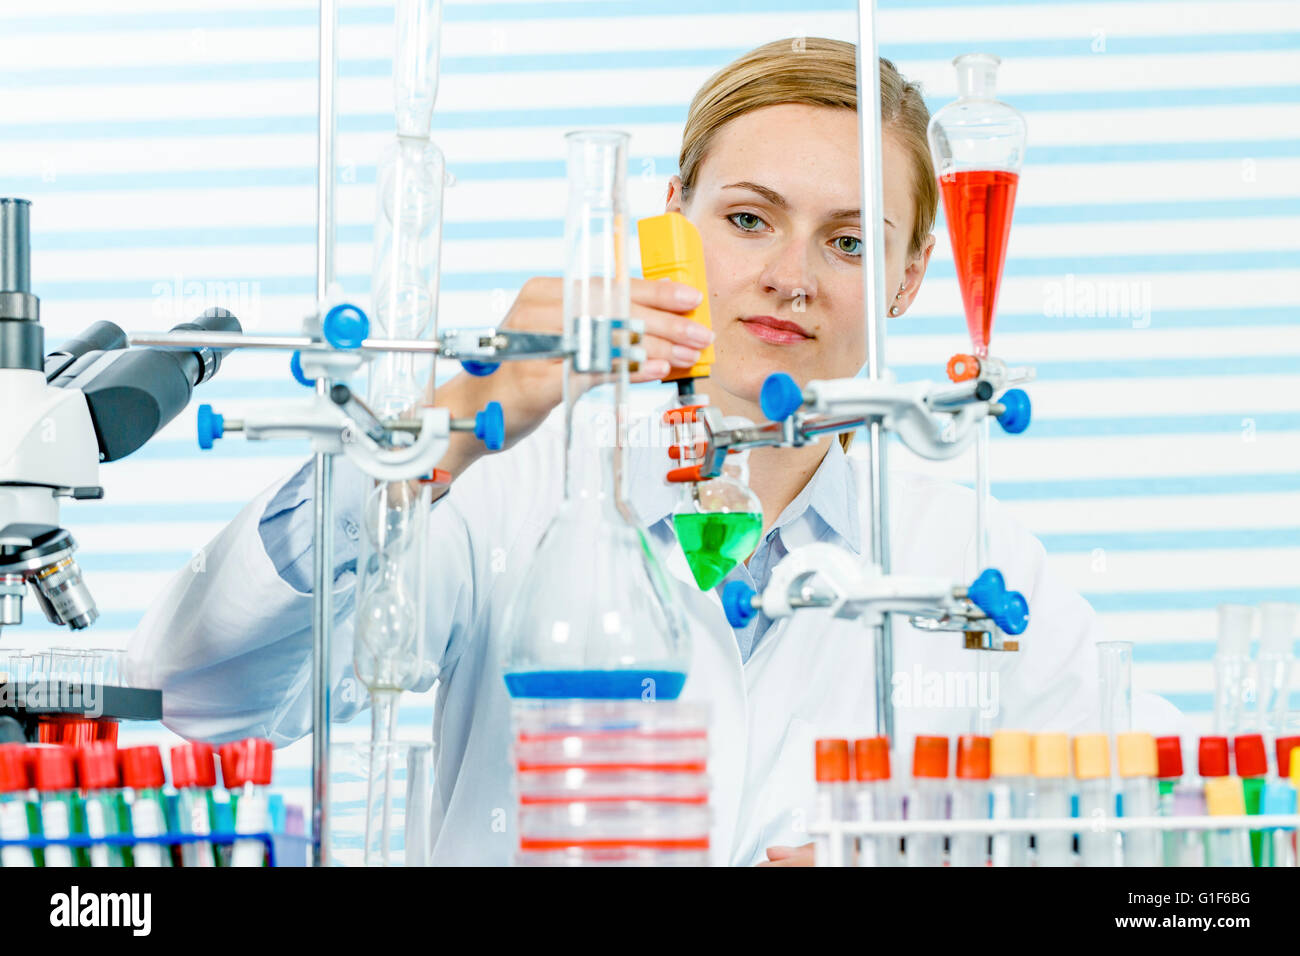 MODEL RELEASED. Female chemist working in laboratory. Stock Photo